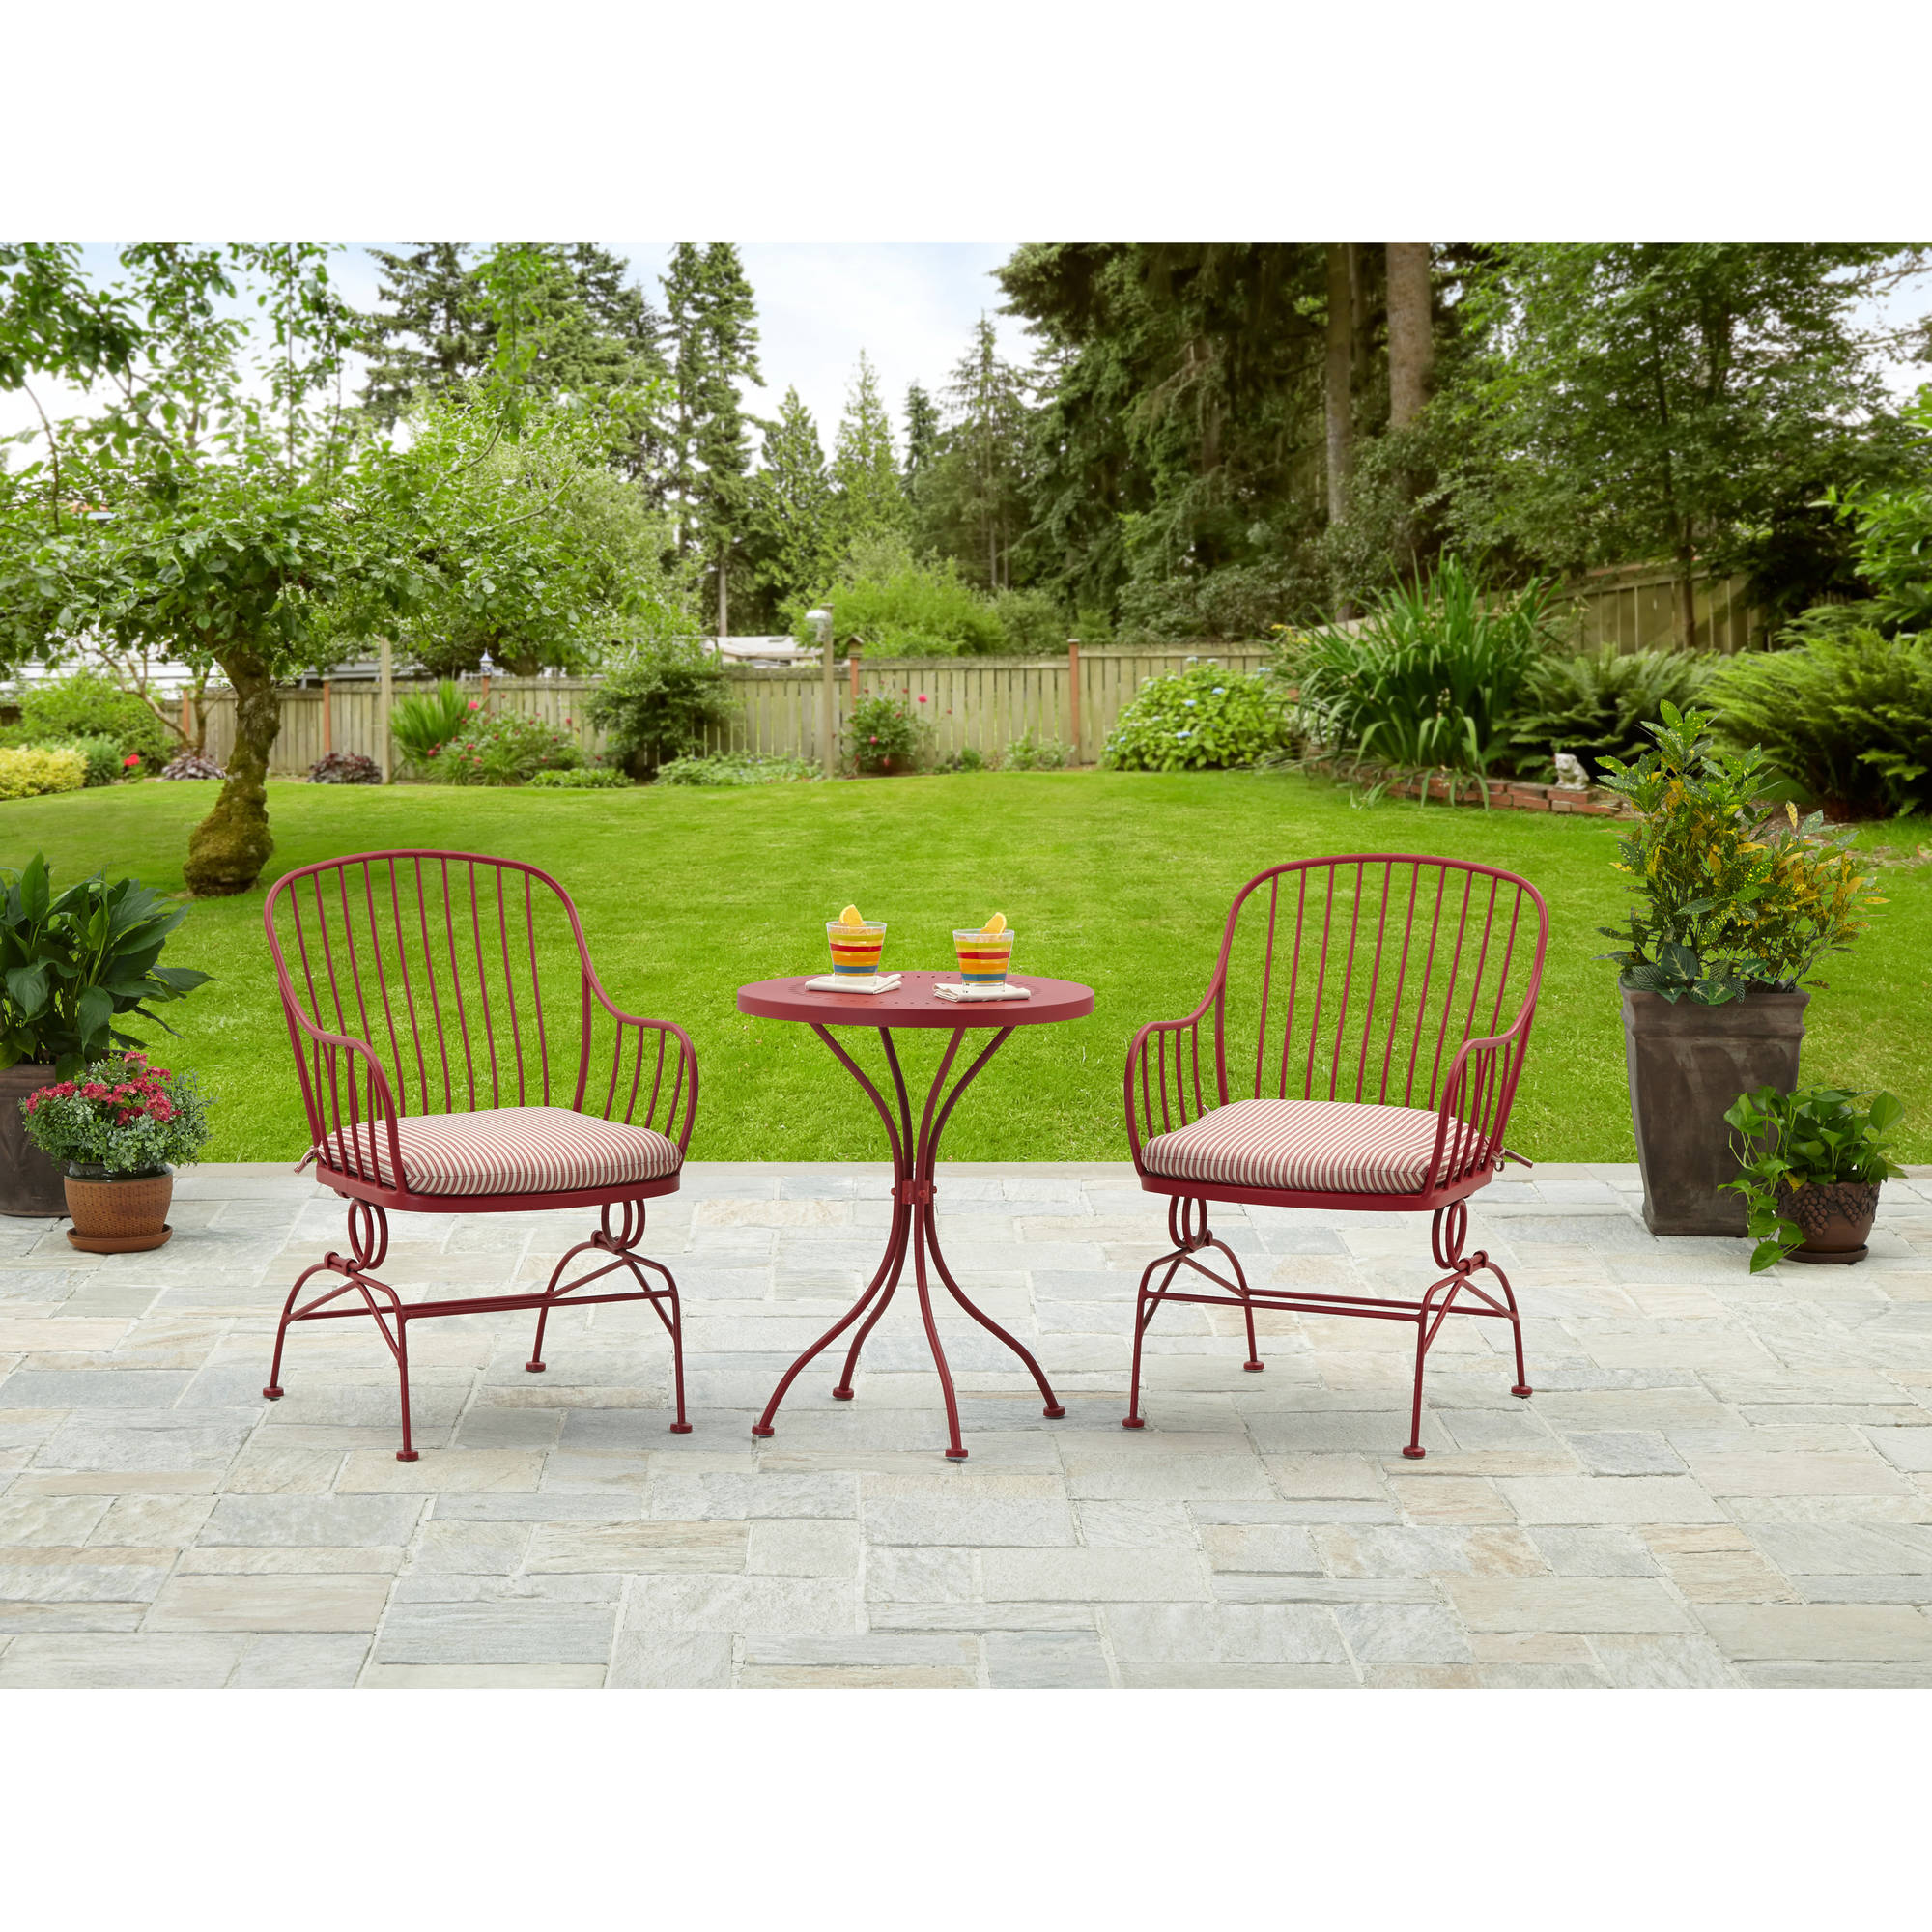 Mainstays 3 Piece Metal Outdoor Bistro Set Seats 2 Red Walmart  sc 1 st  THEDOGOOD.NET & Patio Table Set Images - Bar Height Dining Table Set